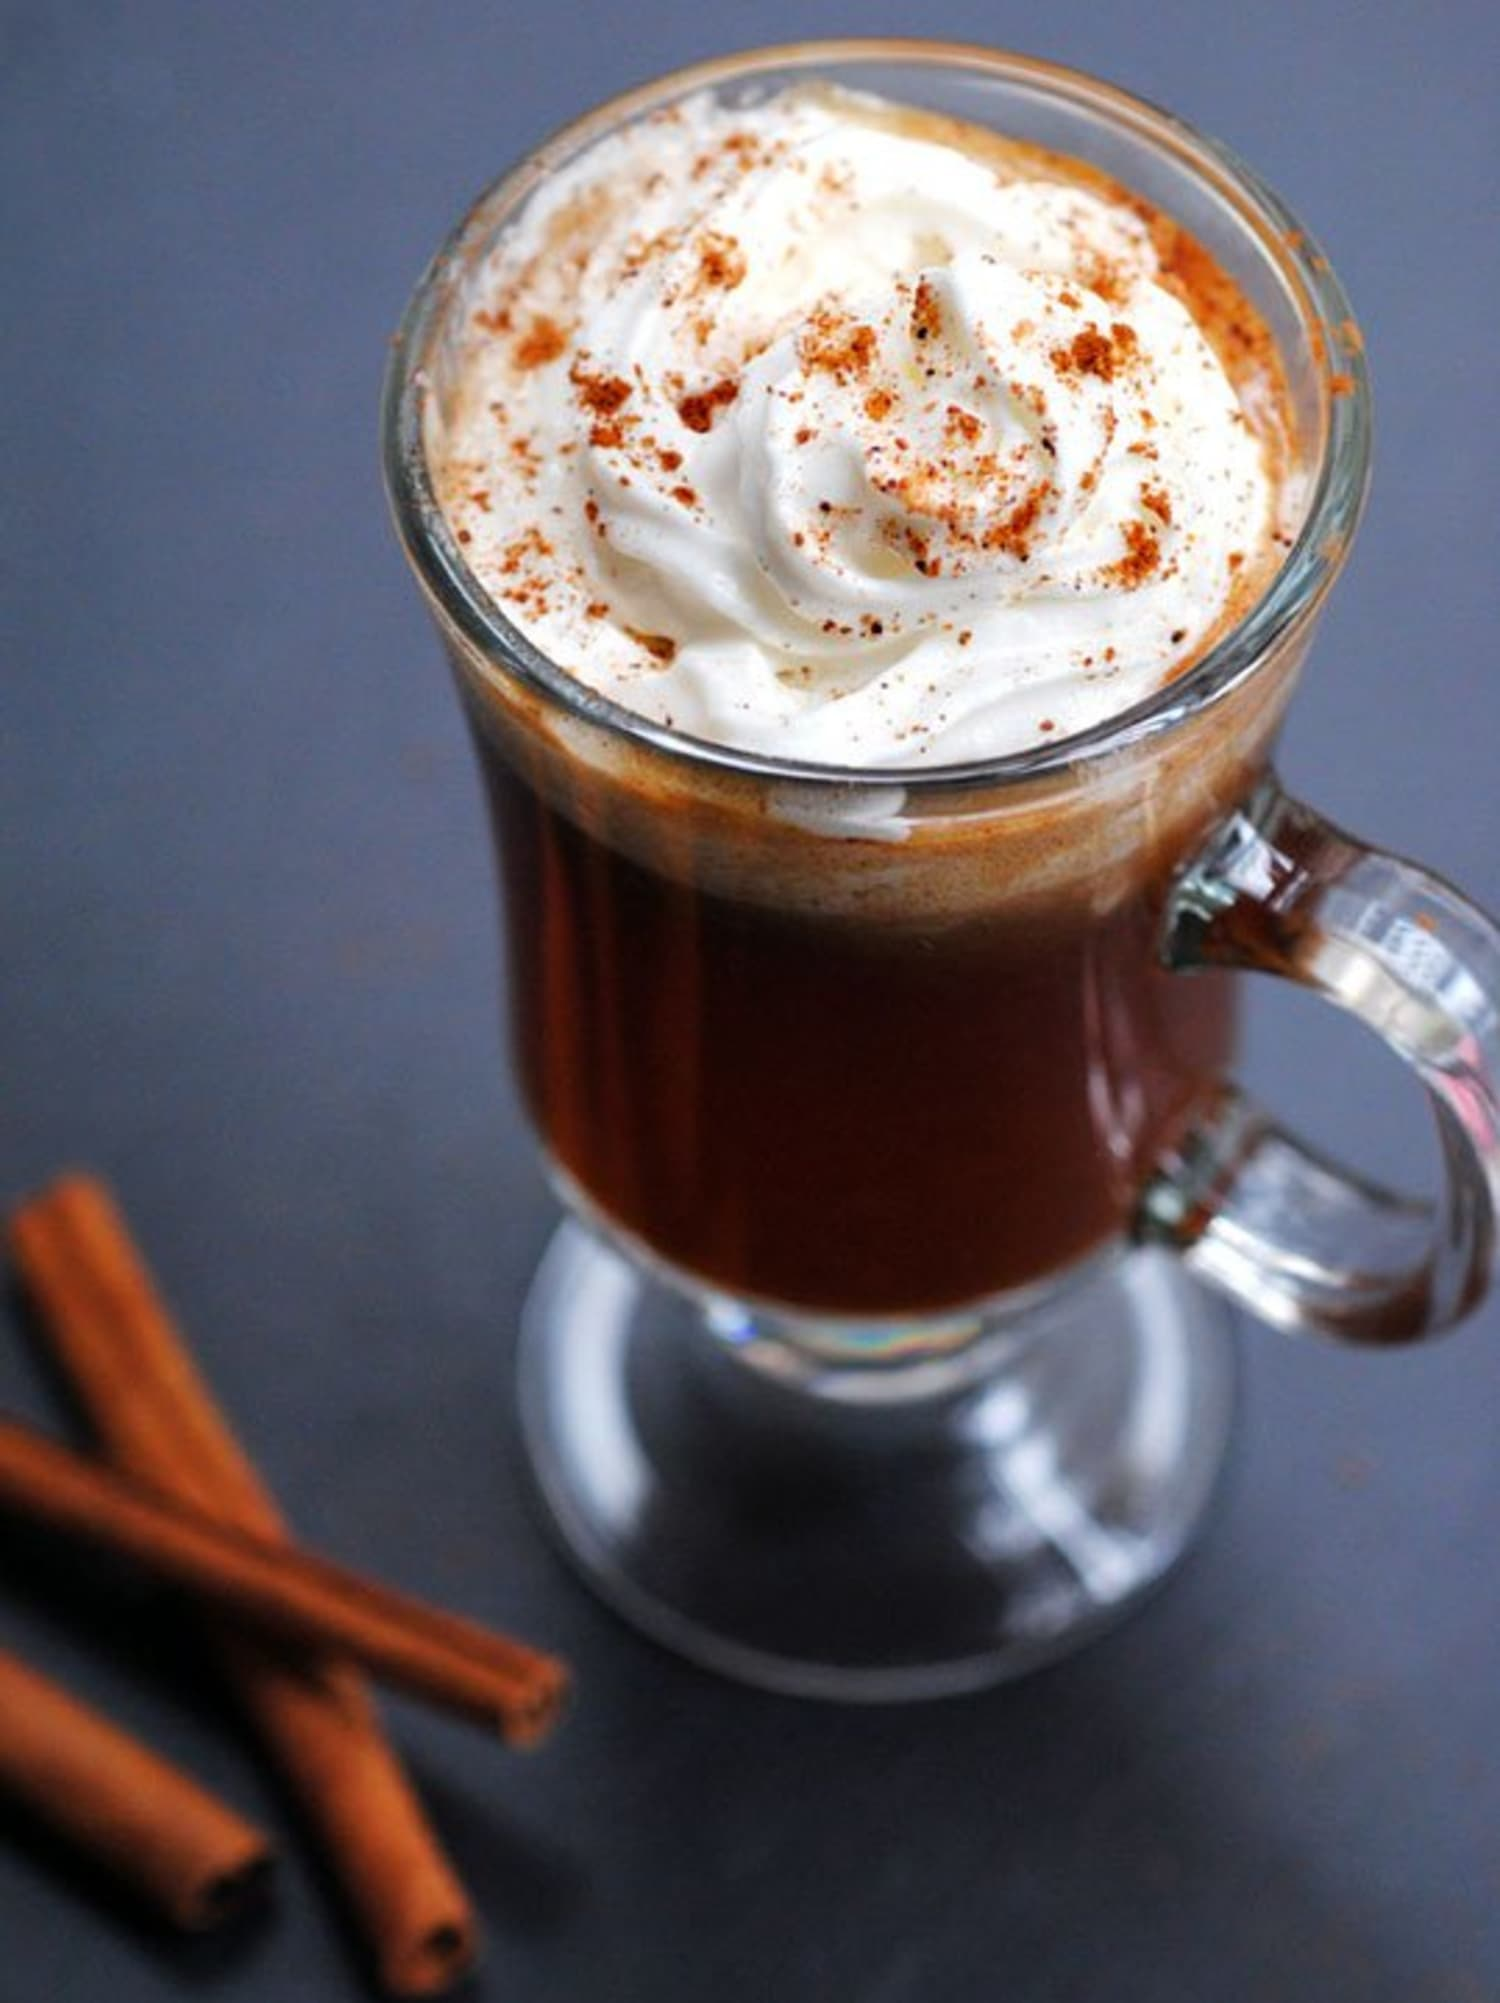 10 Hot & Boozy Drinks to Get Cozy With This Winter